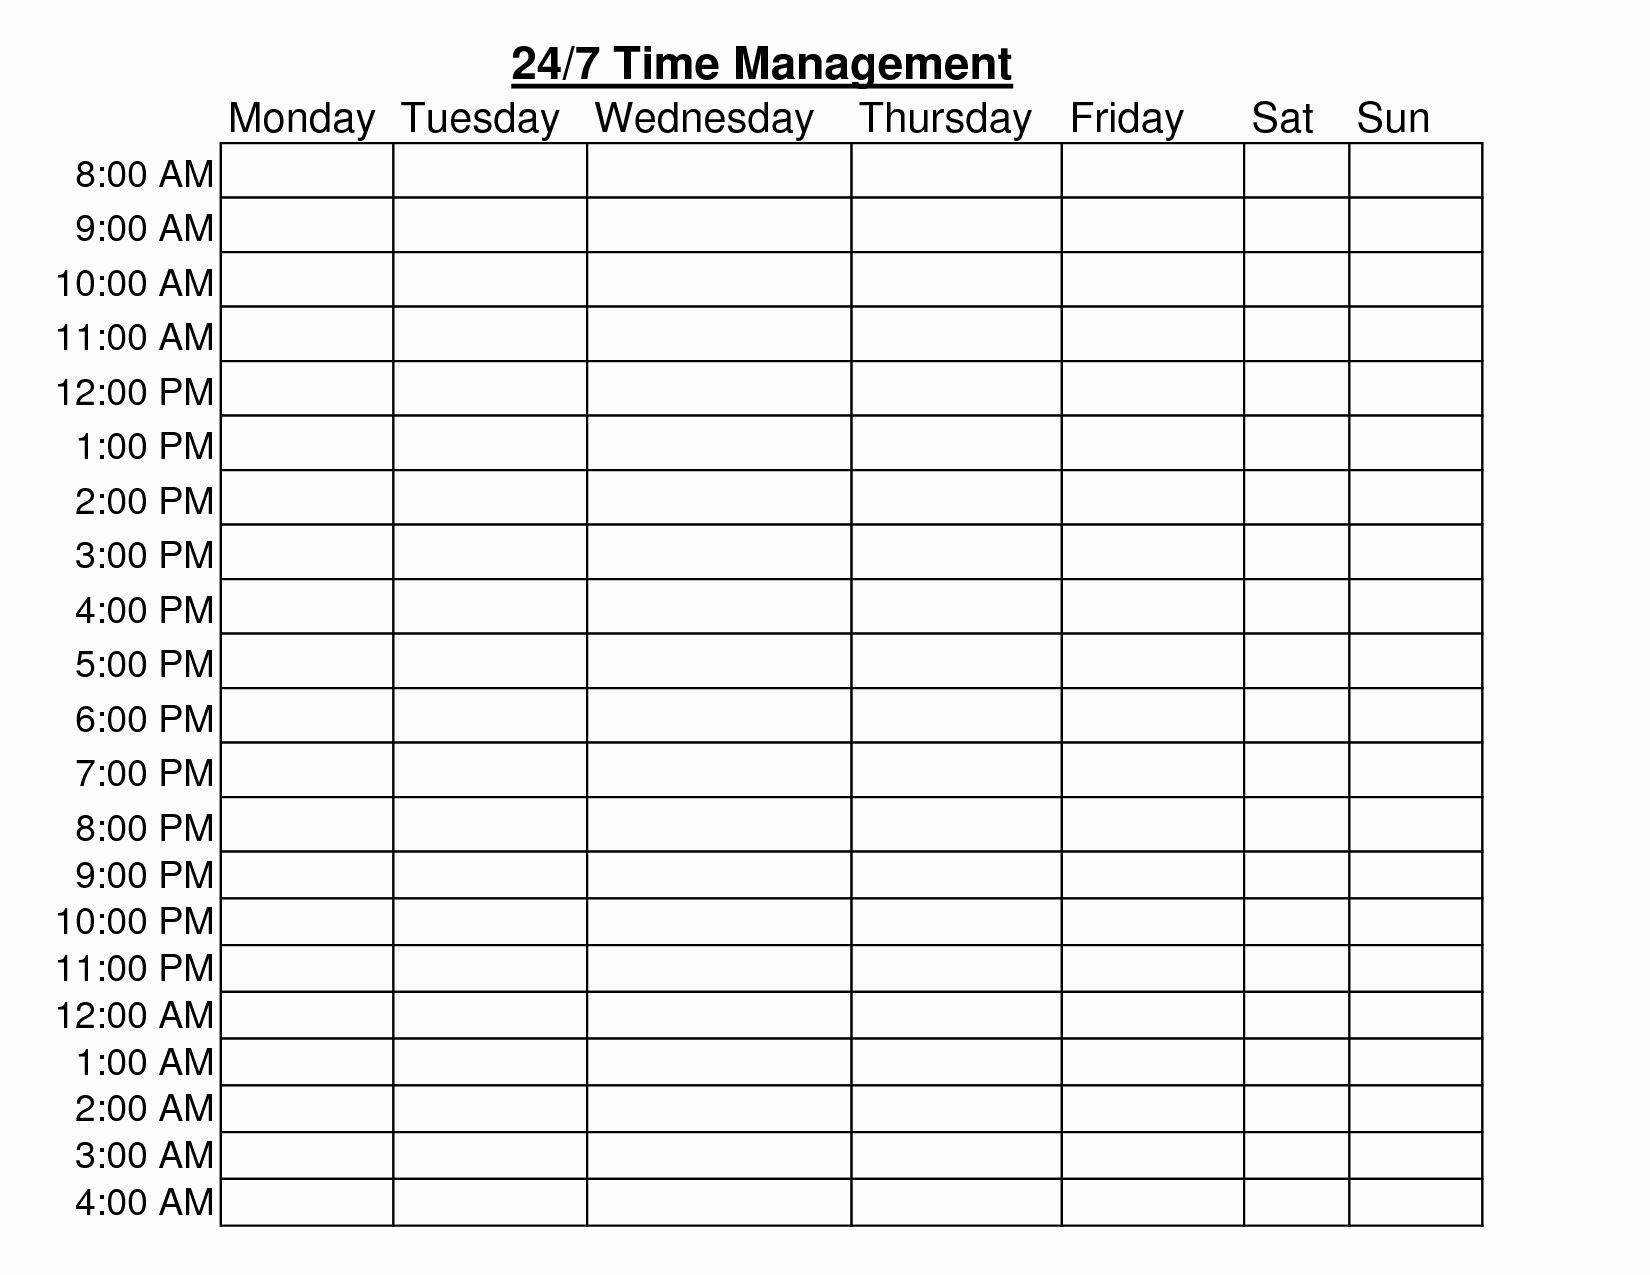 002 Excellent 24 Hour Work Schedule Template Photo  7 DayFull